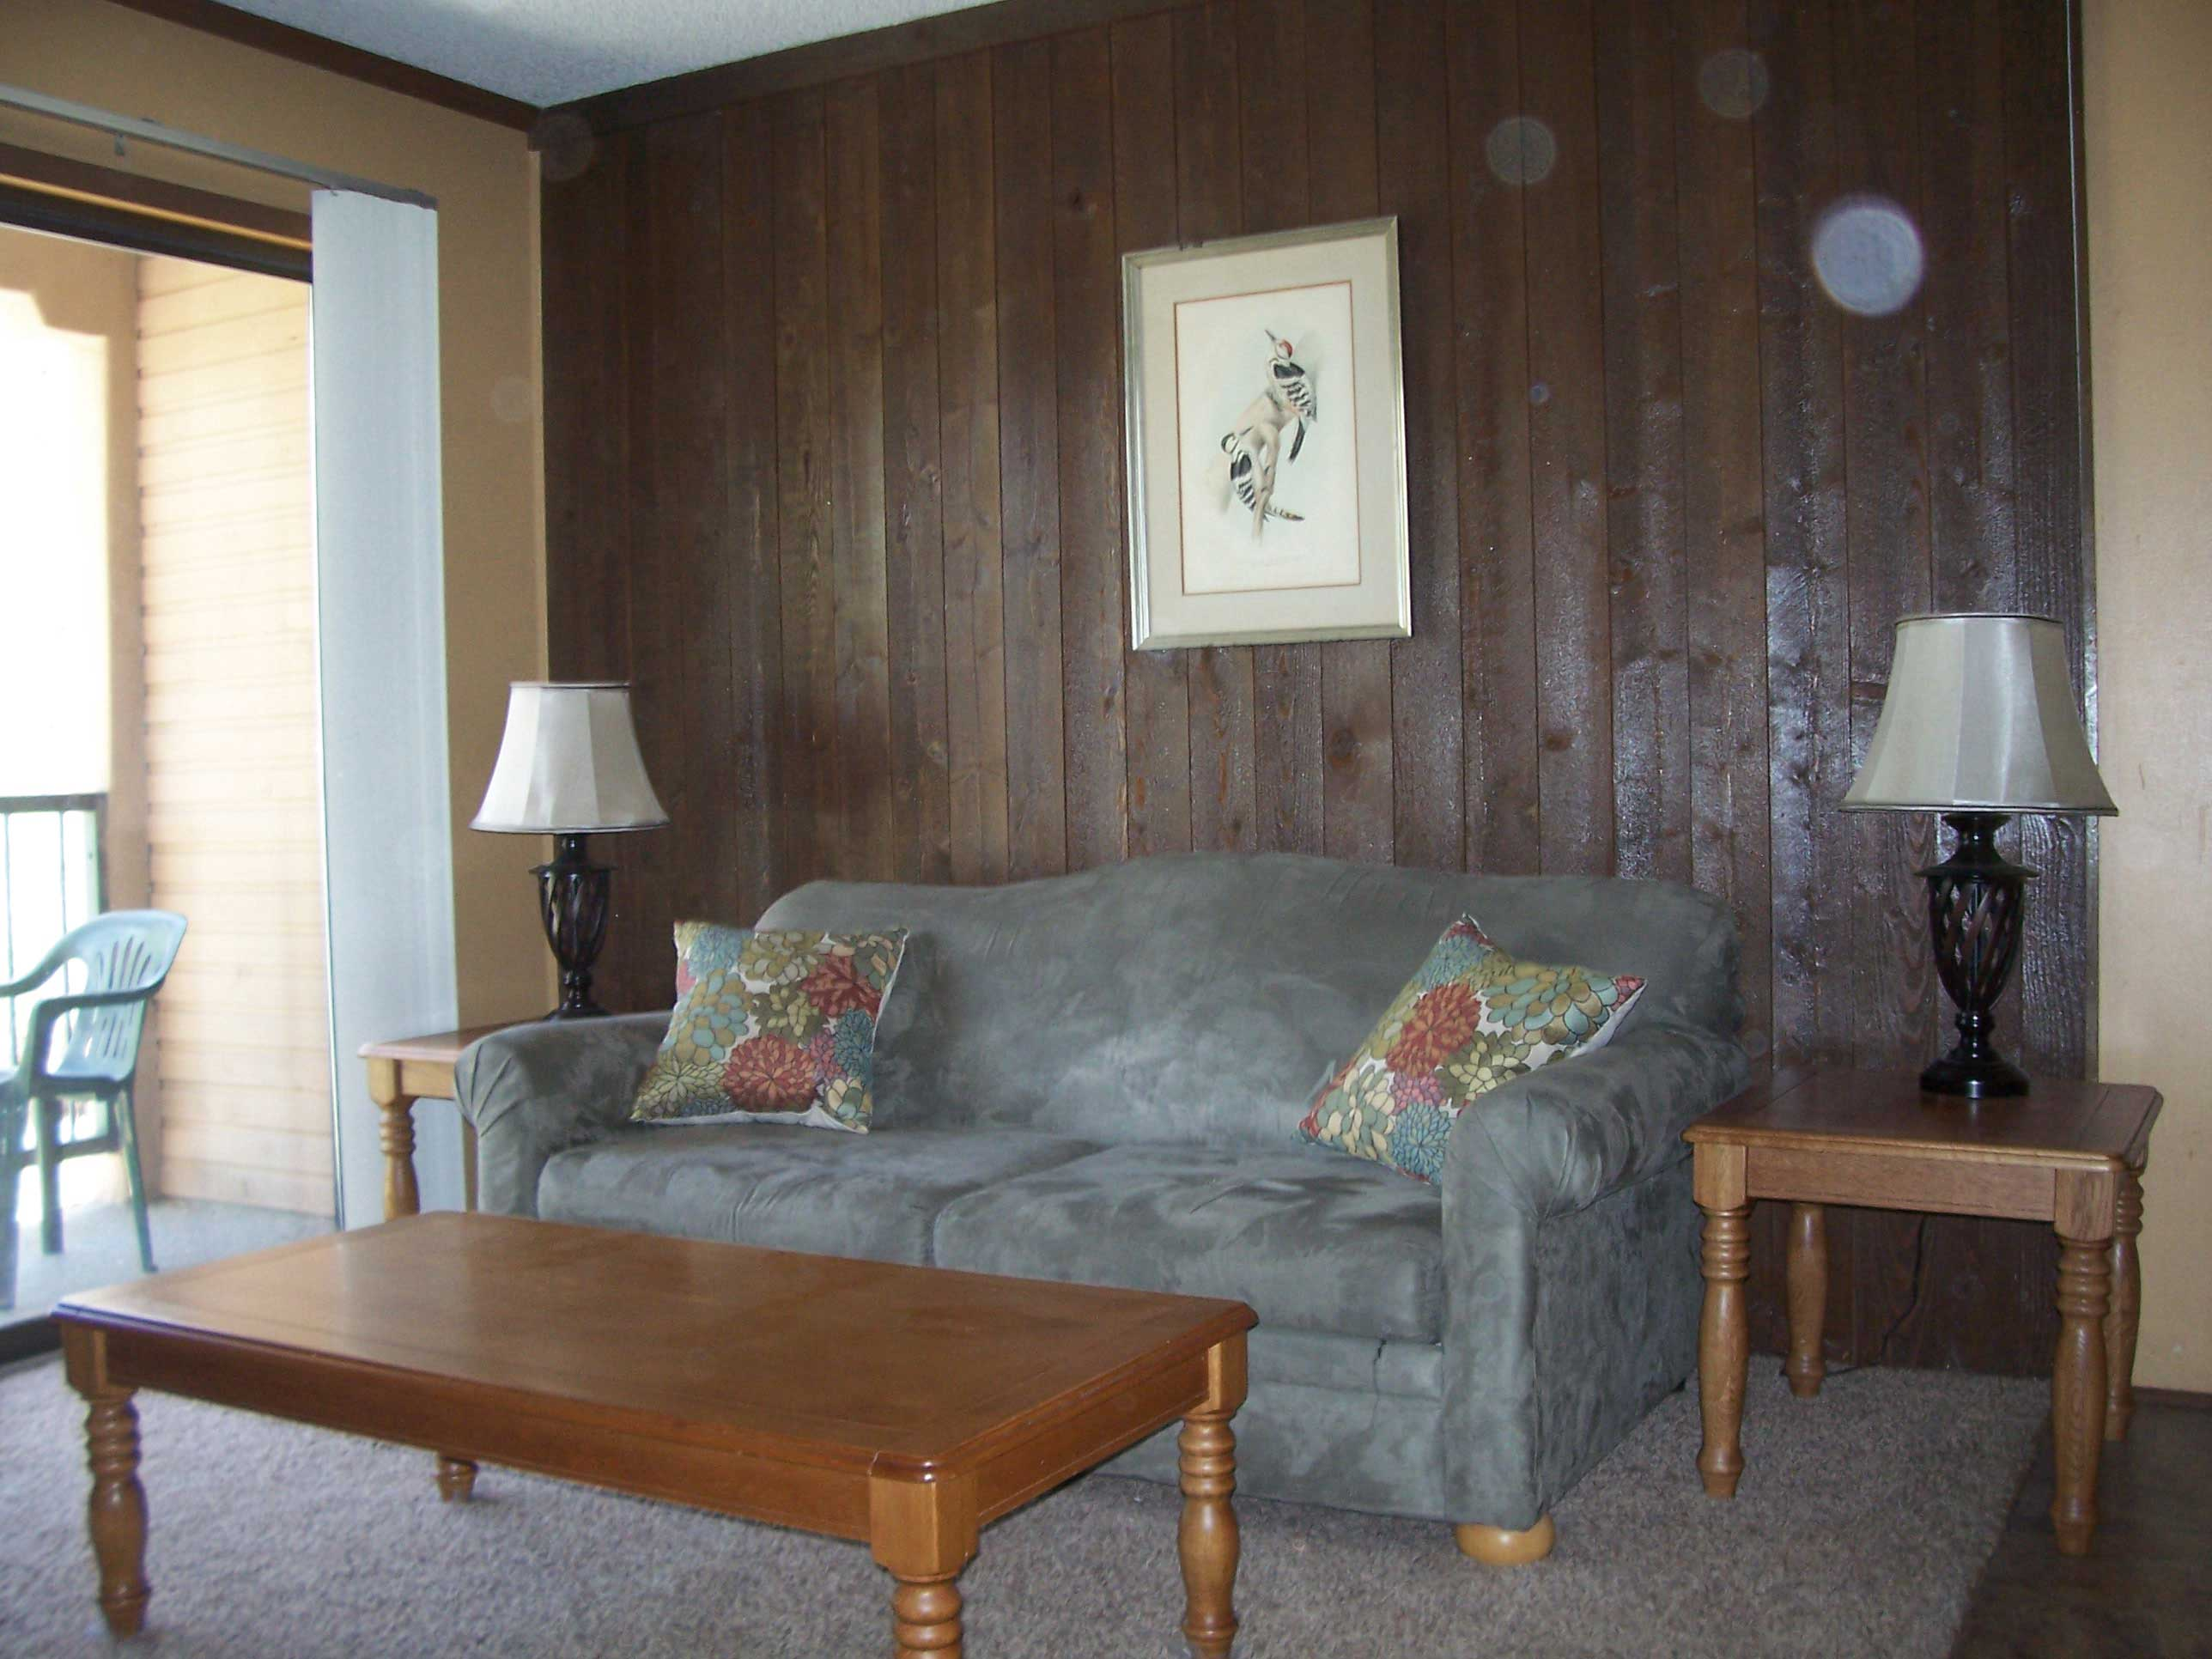 rental ruidoso tub hot craigslist with nm cabin table by for pet rent owner pool rentals and friendly cabins